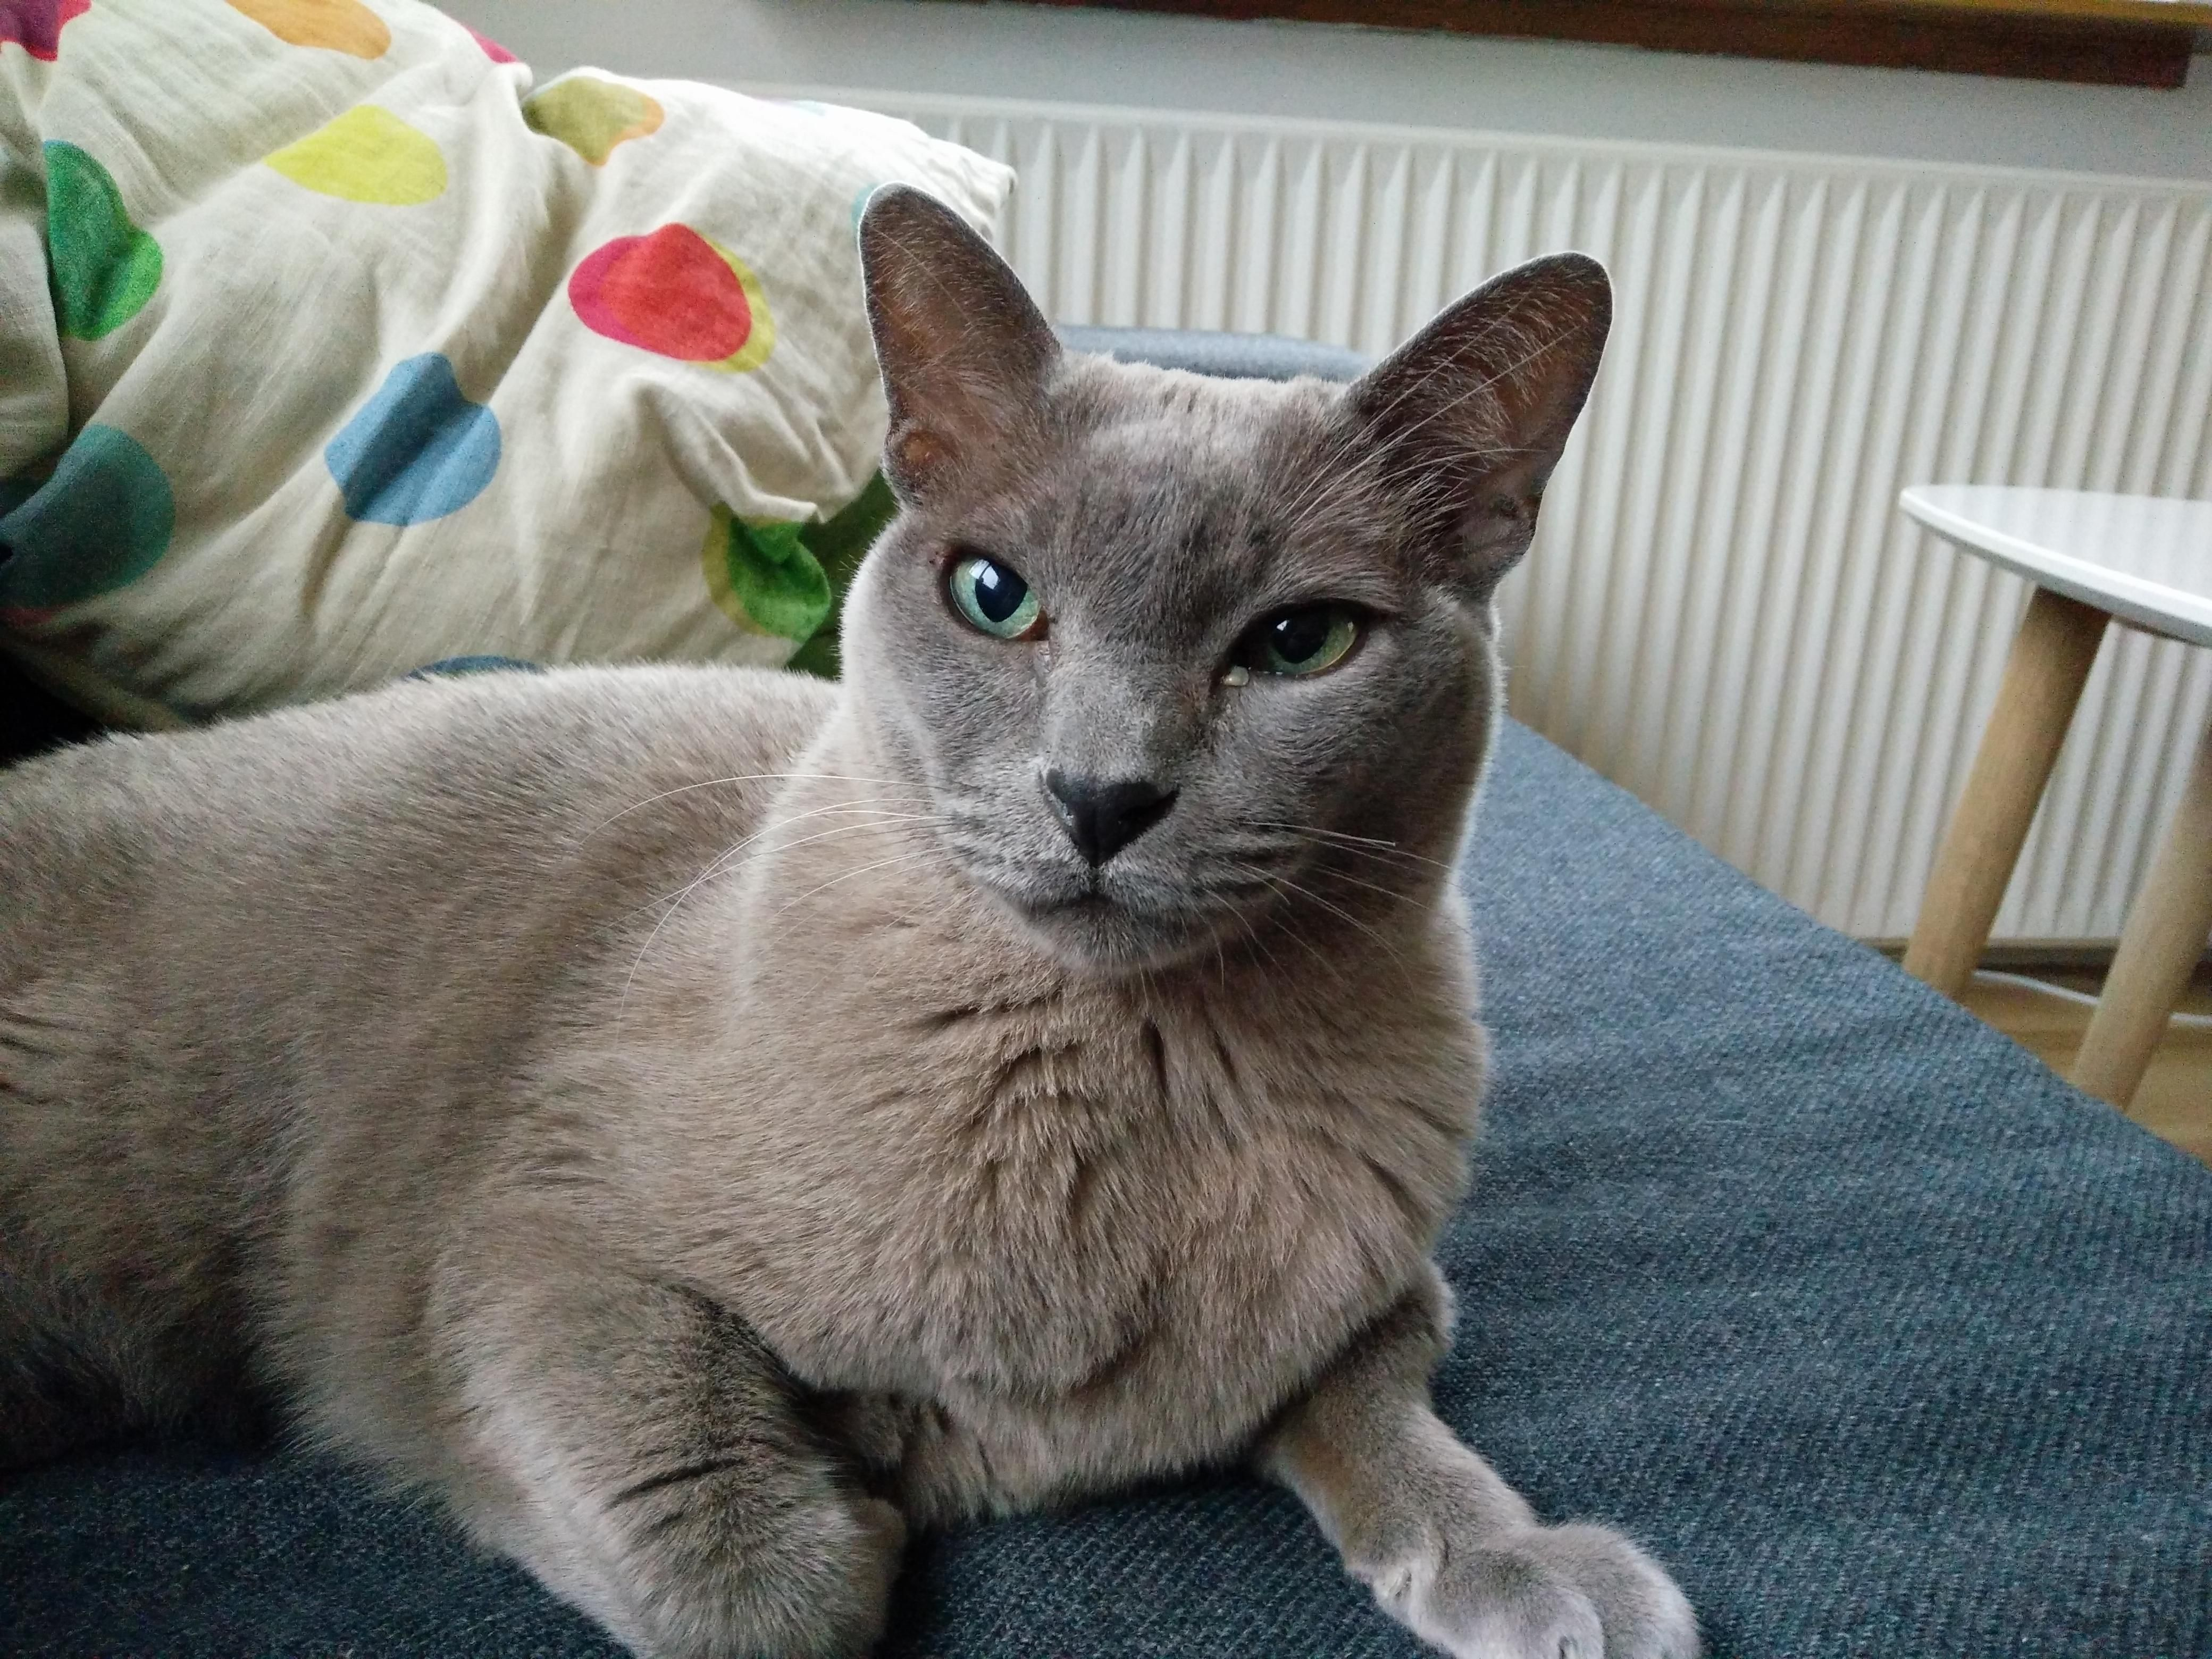 My Mom S Handsome Burmese Cat Charliehttps I Redd It 9qrdn2d96b521 Jpg Burmese Cat Cats Cute Cats